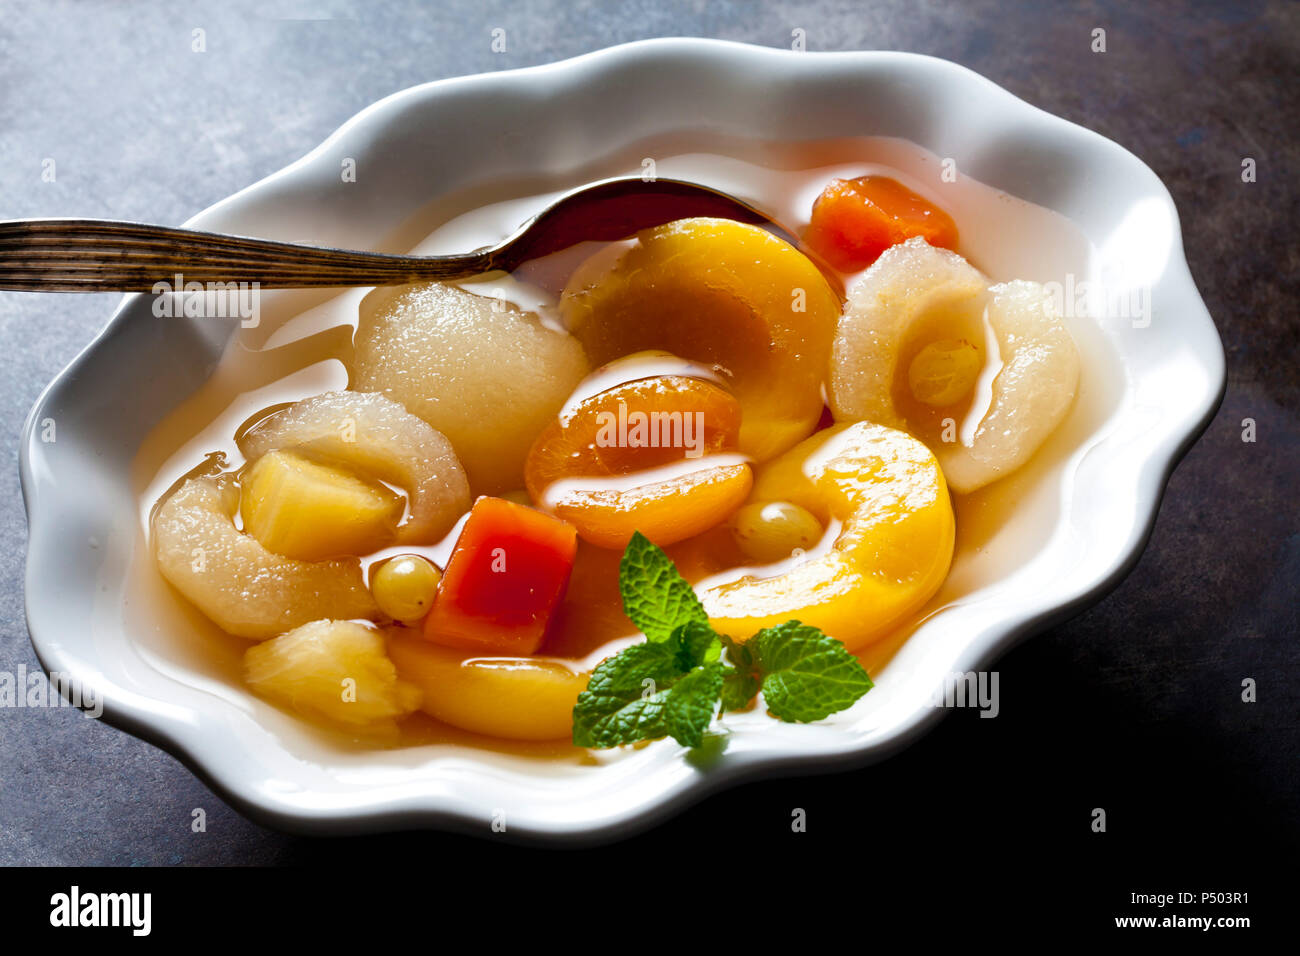 Preserved fruit salad in bowl - Stock Image